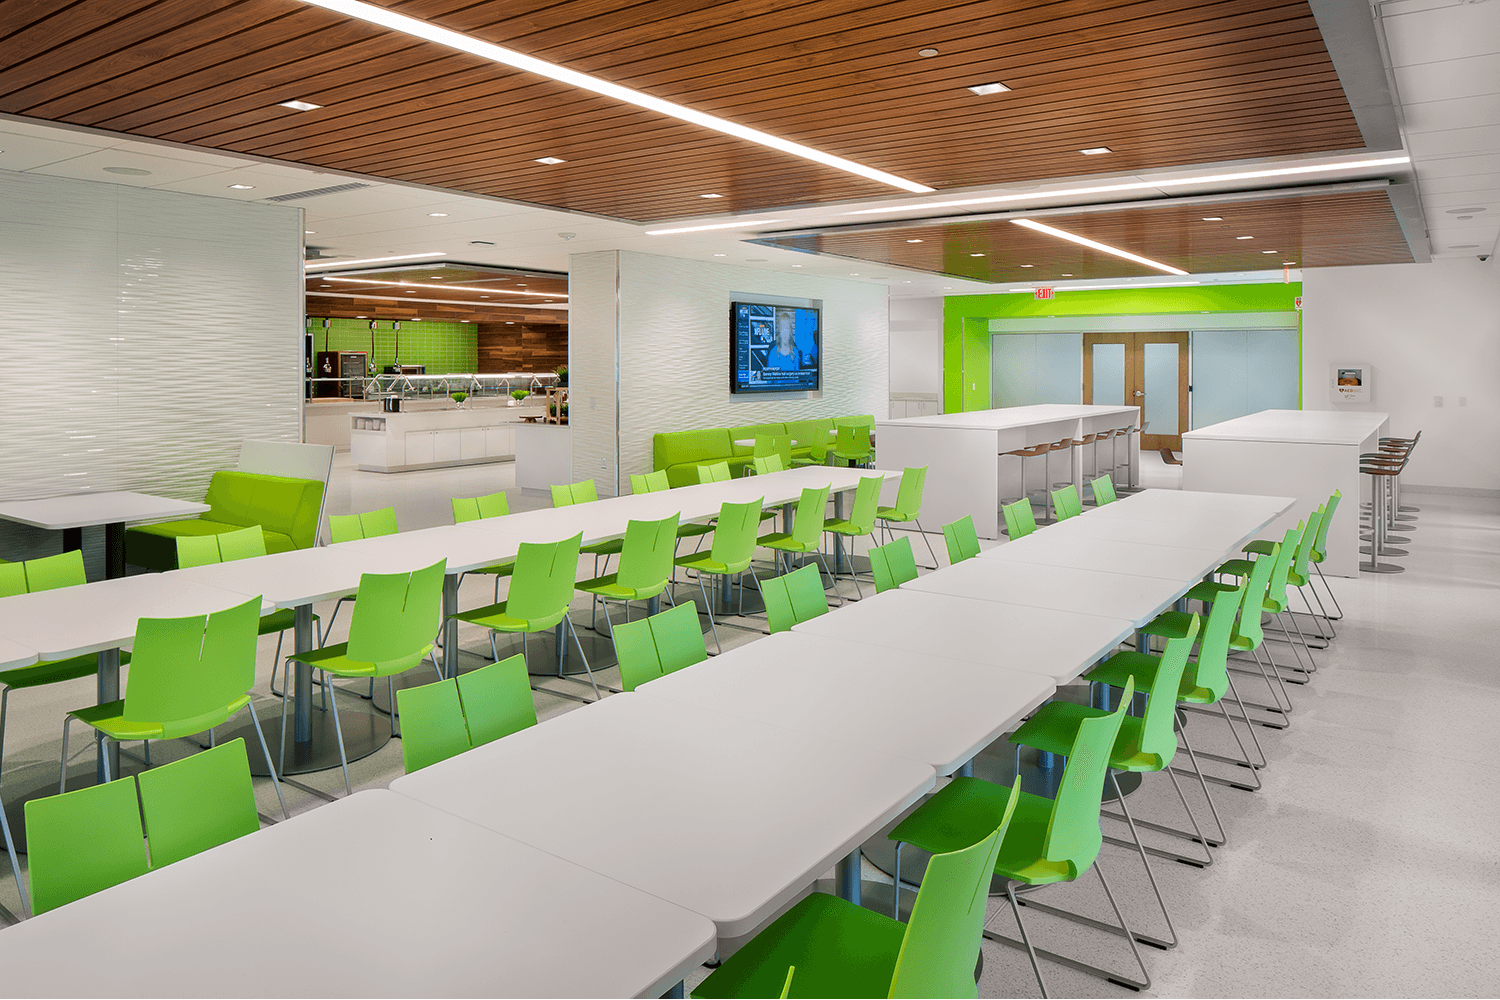 open workspace with bright white tables and green chairs